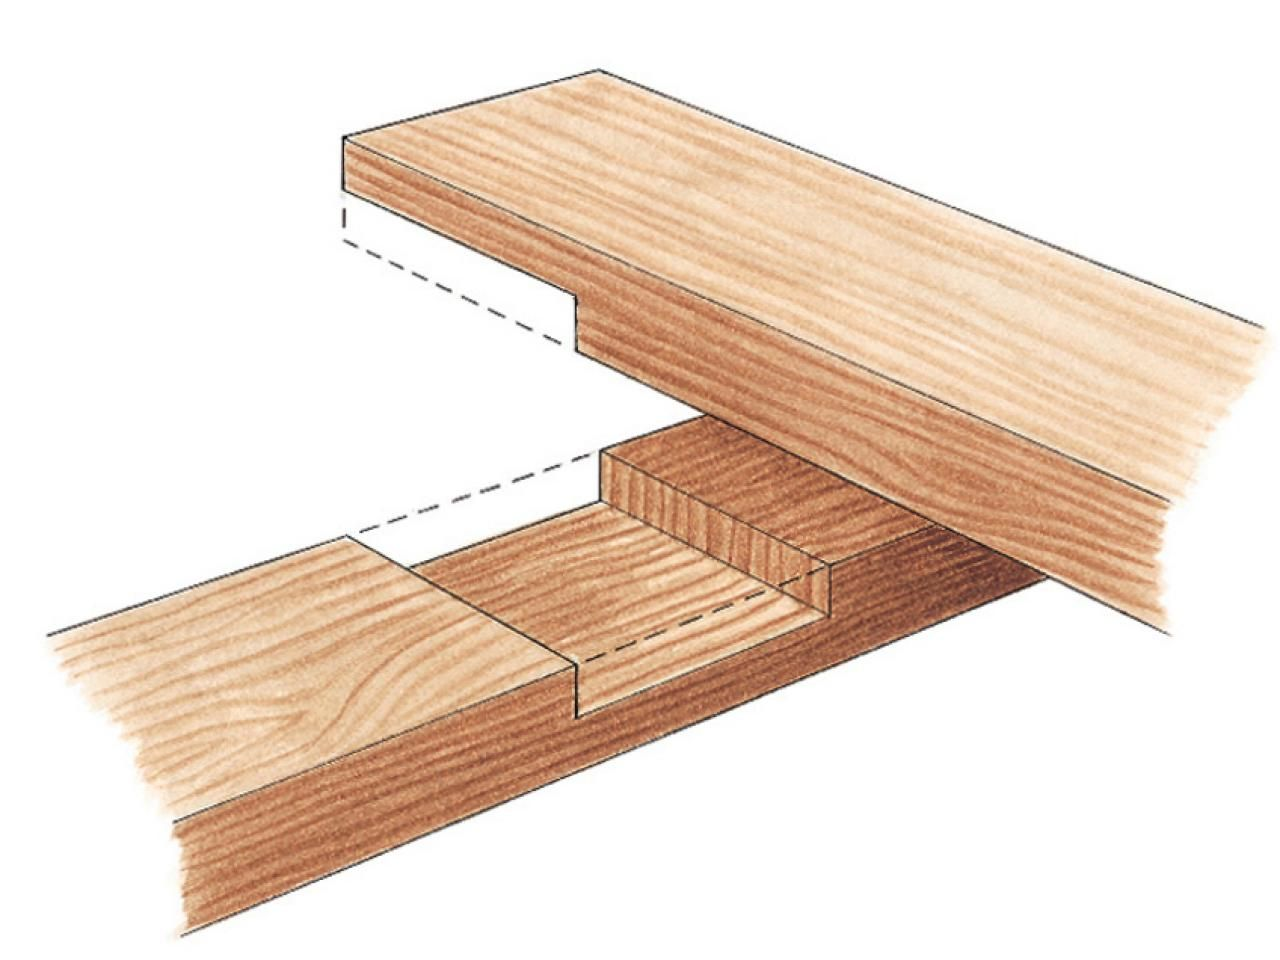 Woodern half housing joint google search anthony sazdanovski learn what construction materials are necessary to build a do it yourself arch or pergola with these tips from diy network solutioingenieria Images